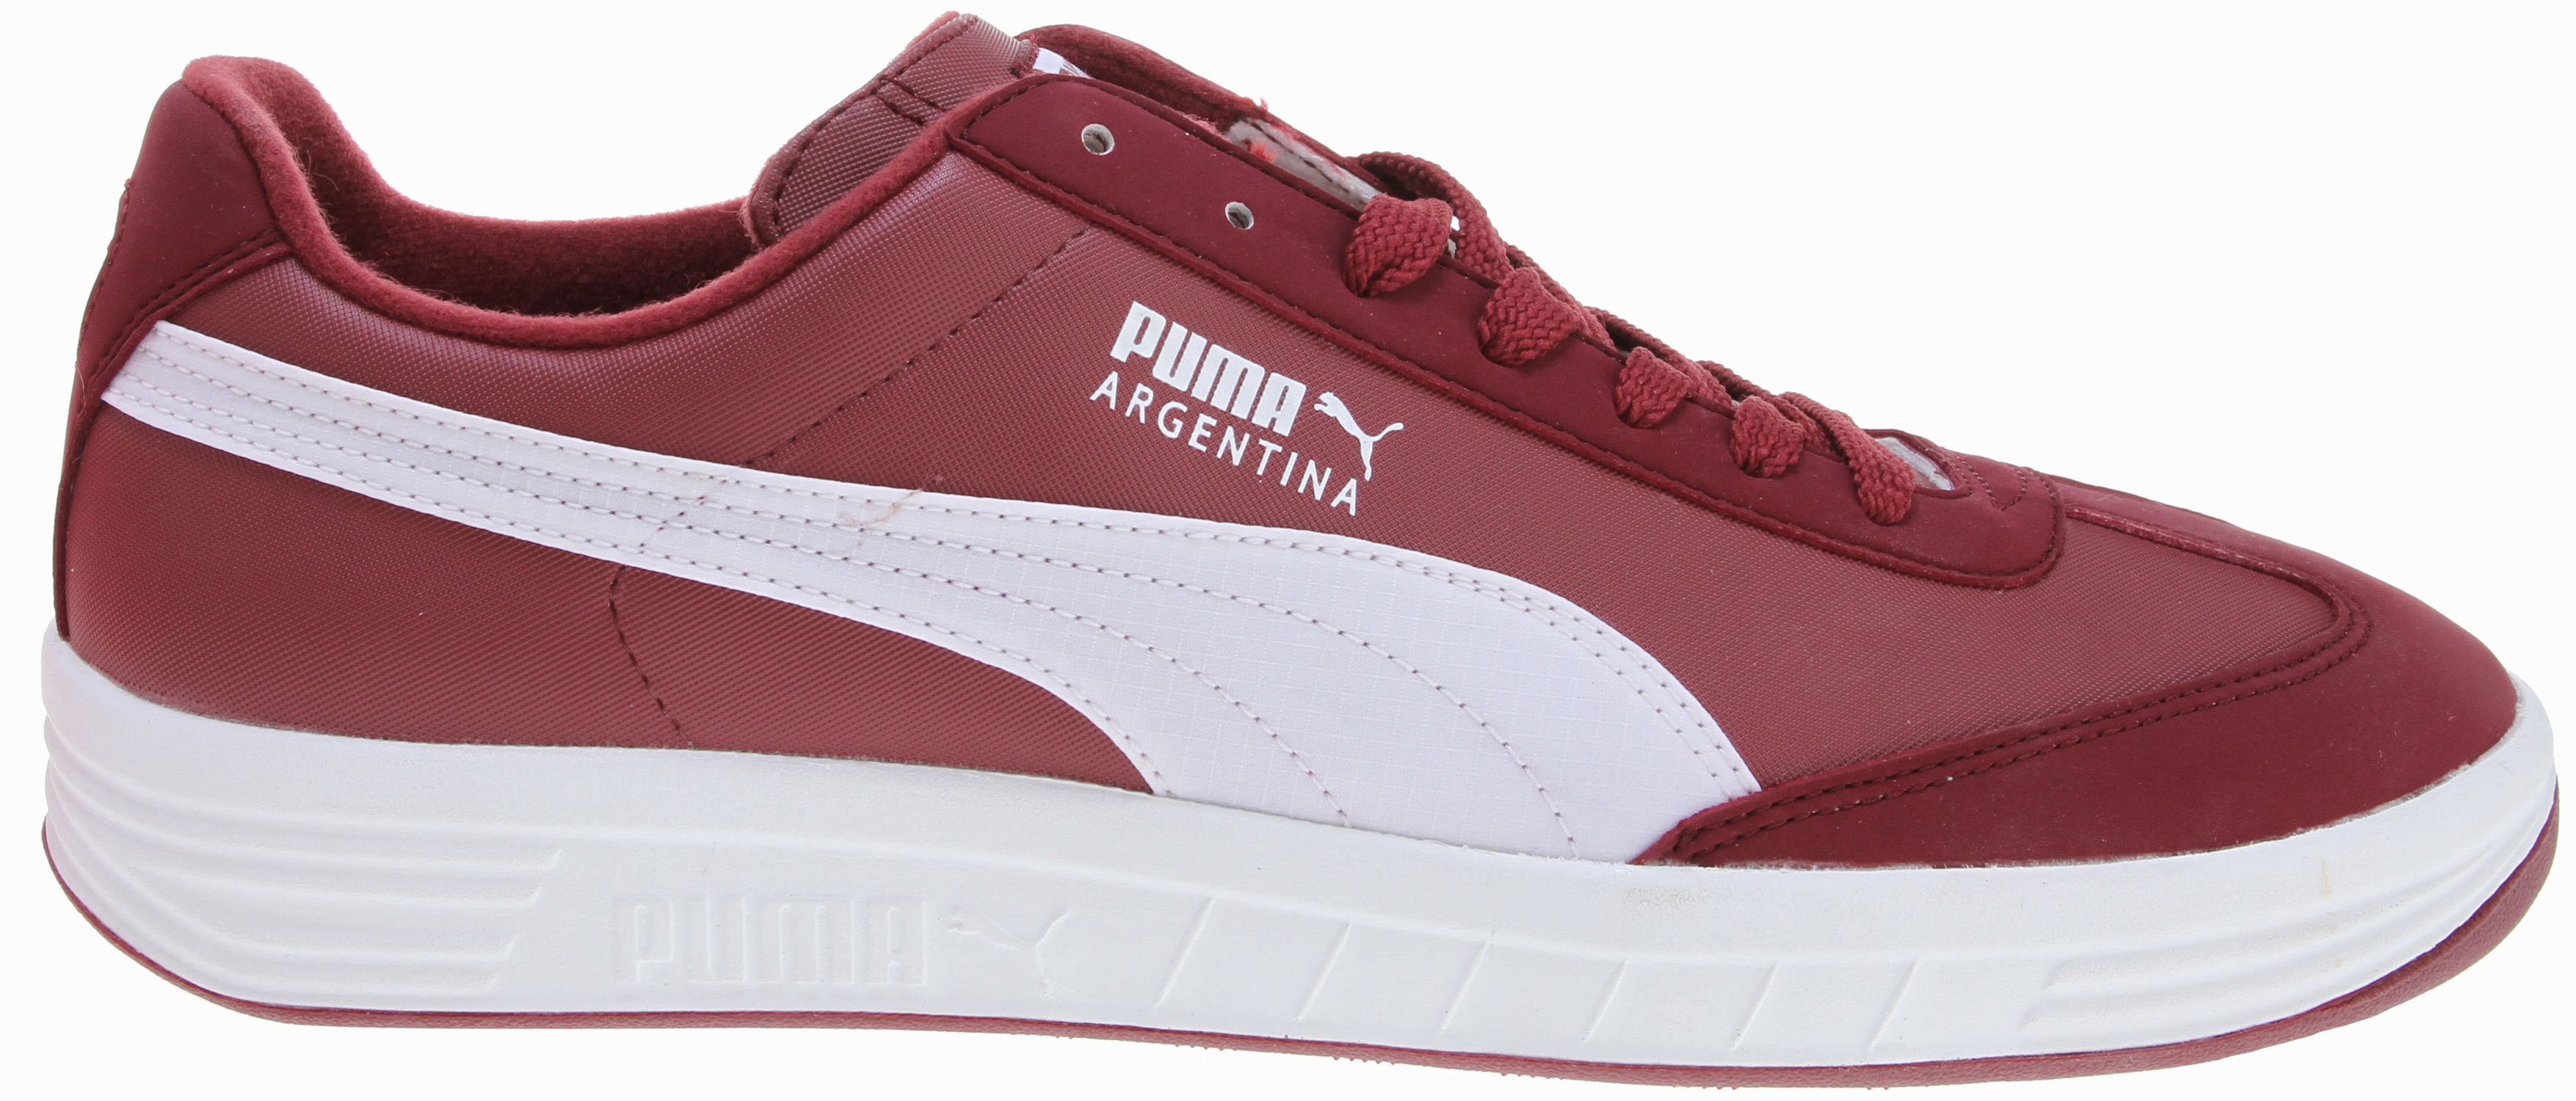 Re-issued from the PUMA archives, the Argentina was adopted by the B-boy community for its simplicity and clean styling. The Argentina became one of PUMA's most iconic styles in the UK as the low profile alternative to the GV Special. Available in rich, classic nubuck. Key Features of the Puma Argentina Nbk Shoes: Insole: Molded Polyurethane Outsole: Rubber Upper: Nubuck - $45.95